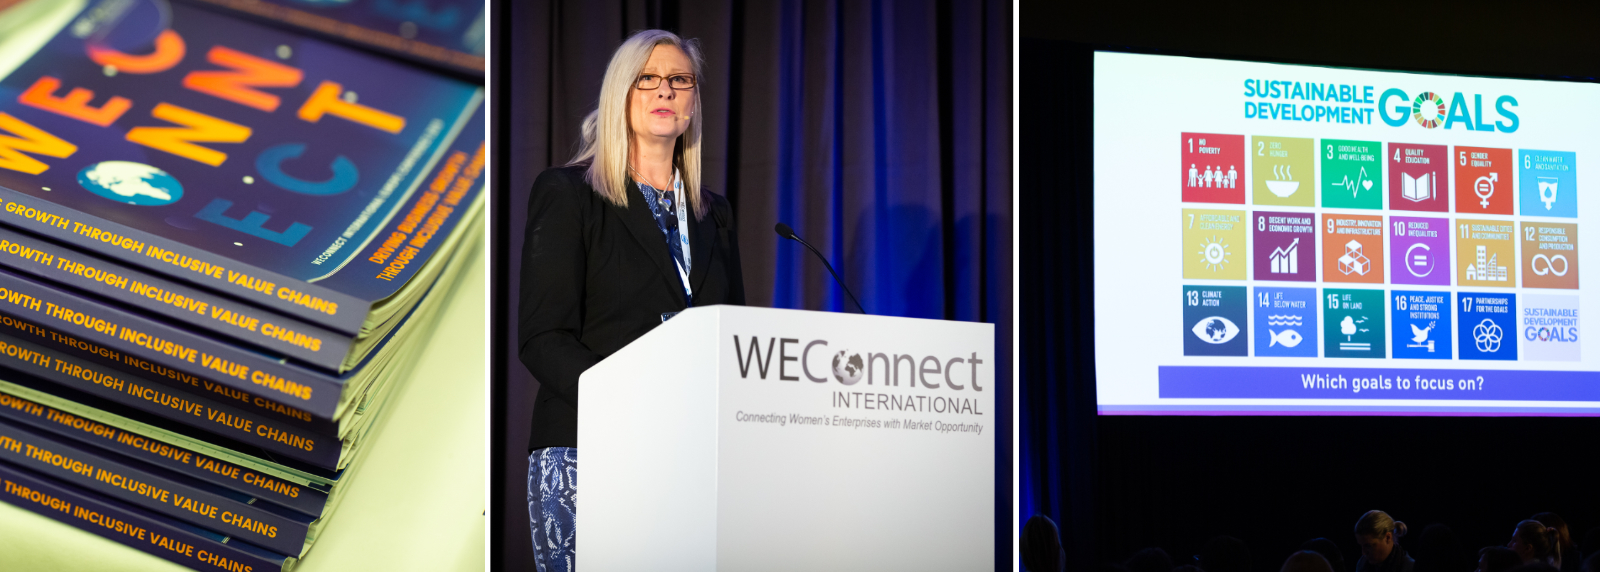 WEConnect Europe Conference 2019